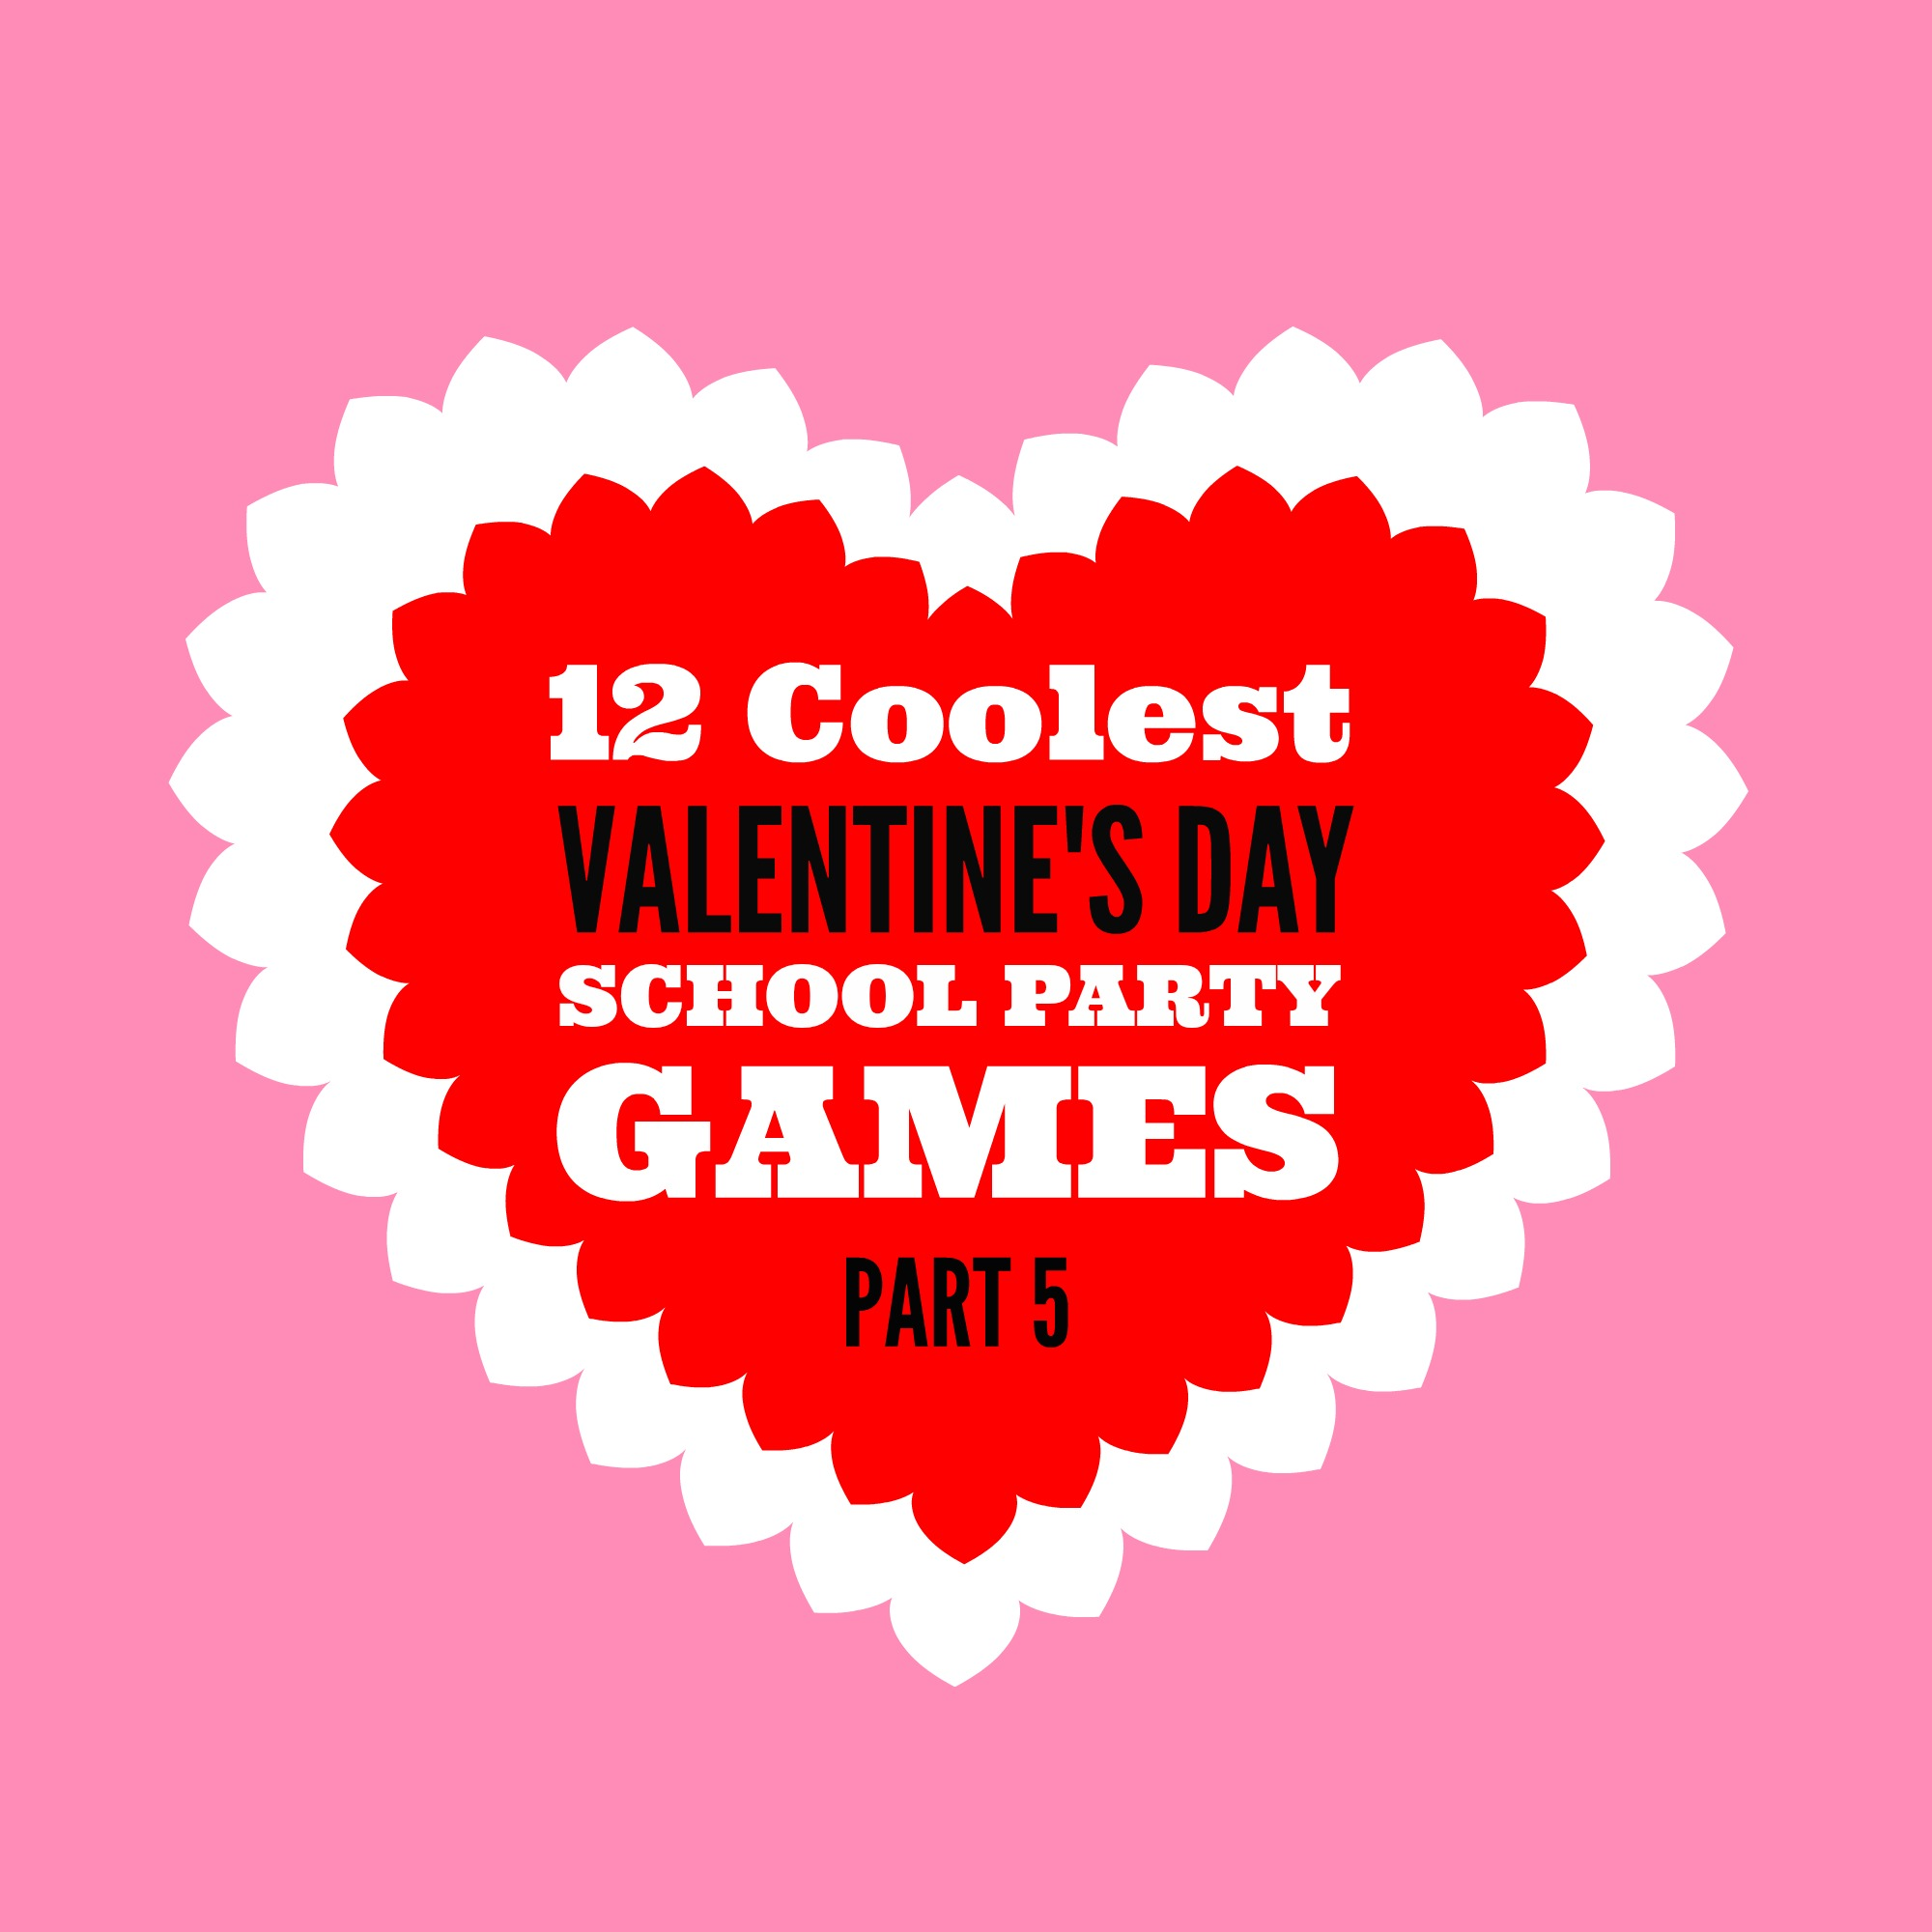 12 Coolest Valentines Day School Party Games Part 5